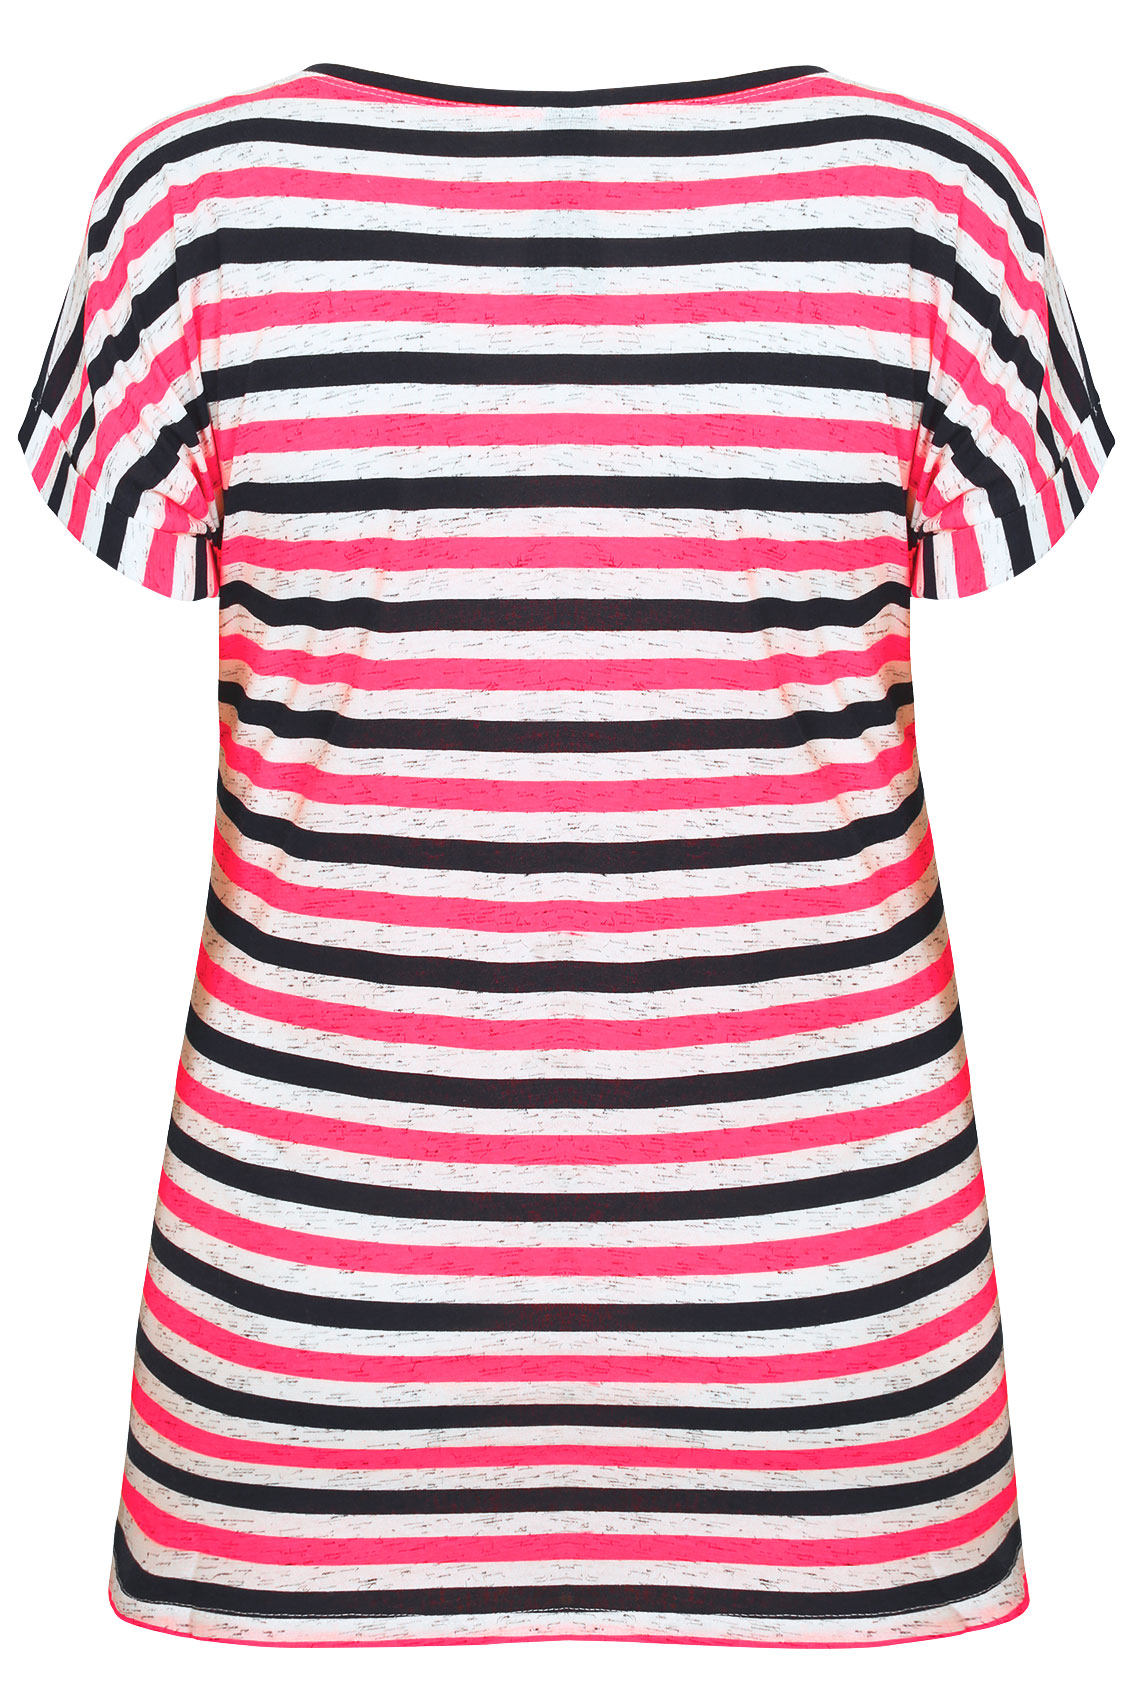 Pink White Navy Stripe T Shirt With Short Turn Back